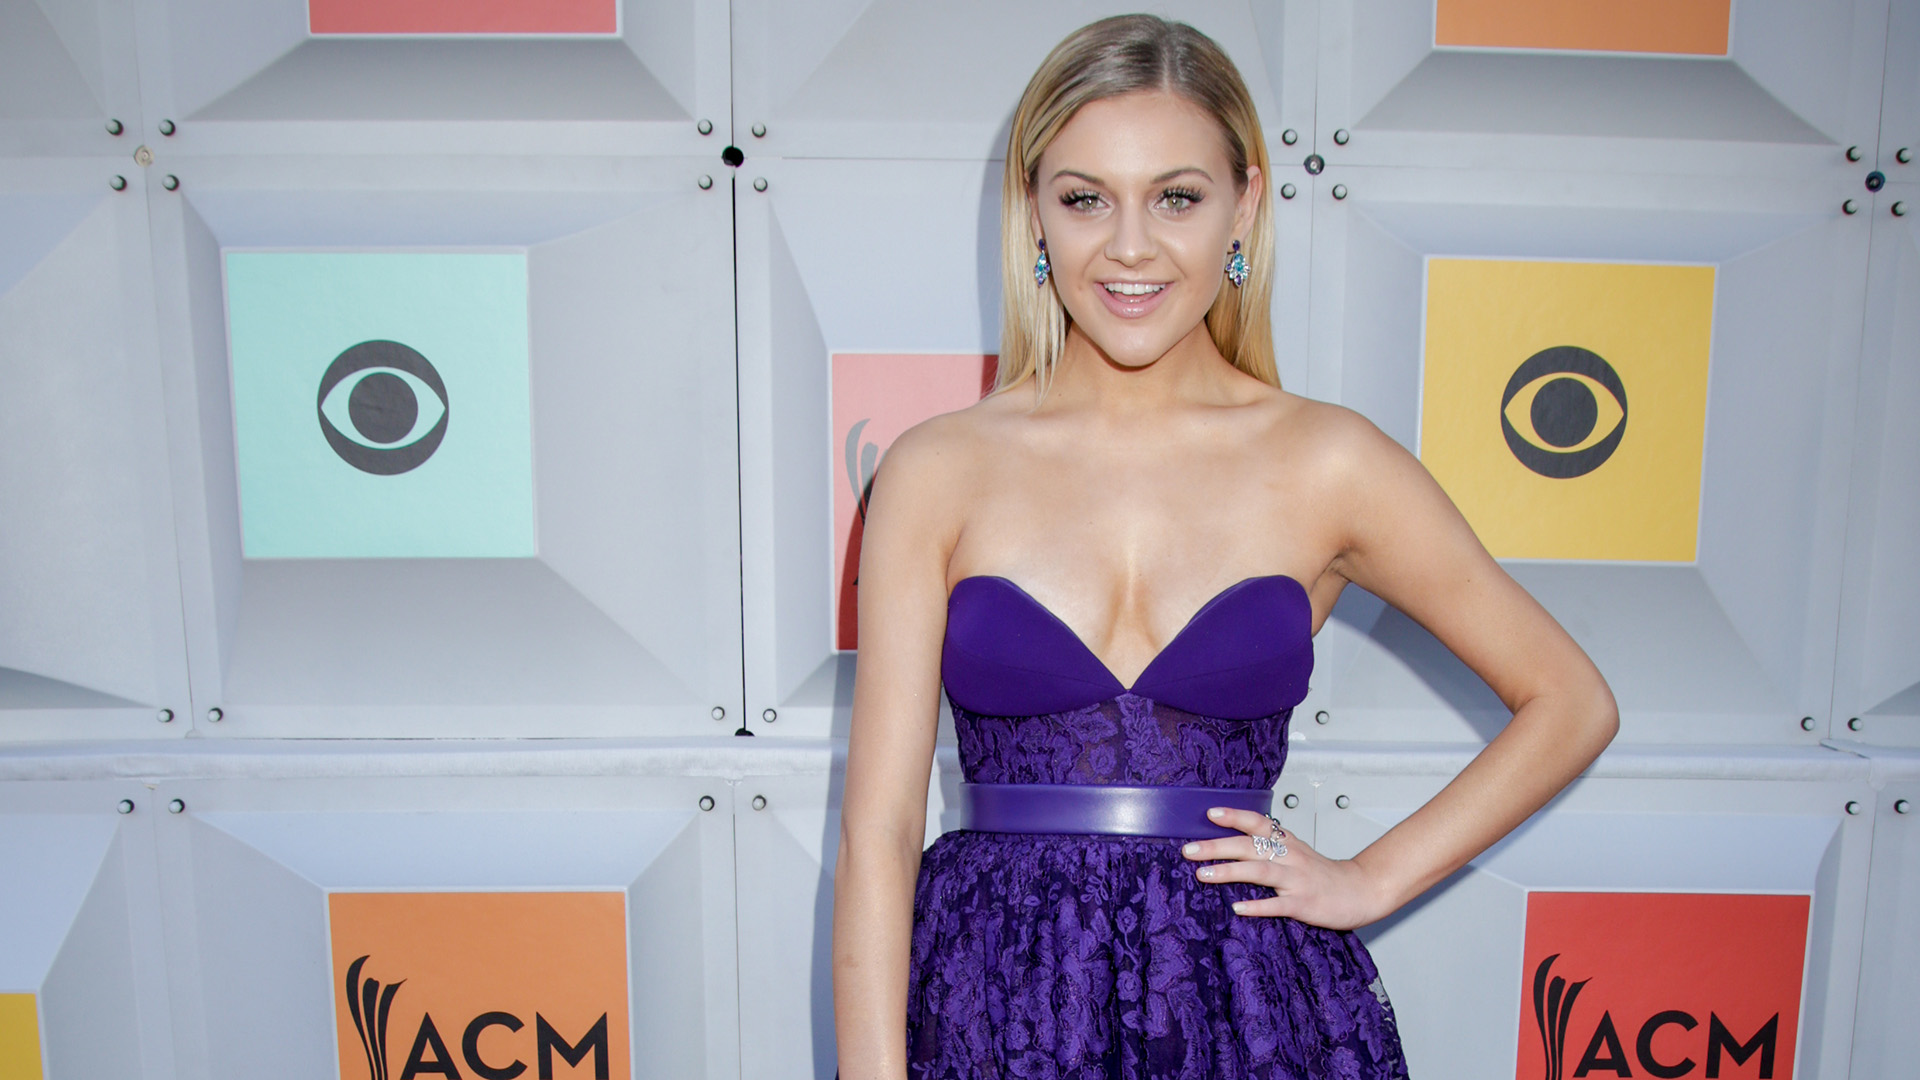 Kelsea Ballerini: New Female Vocalist Of The Year